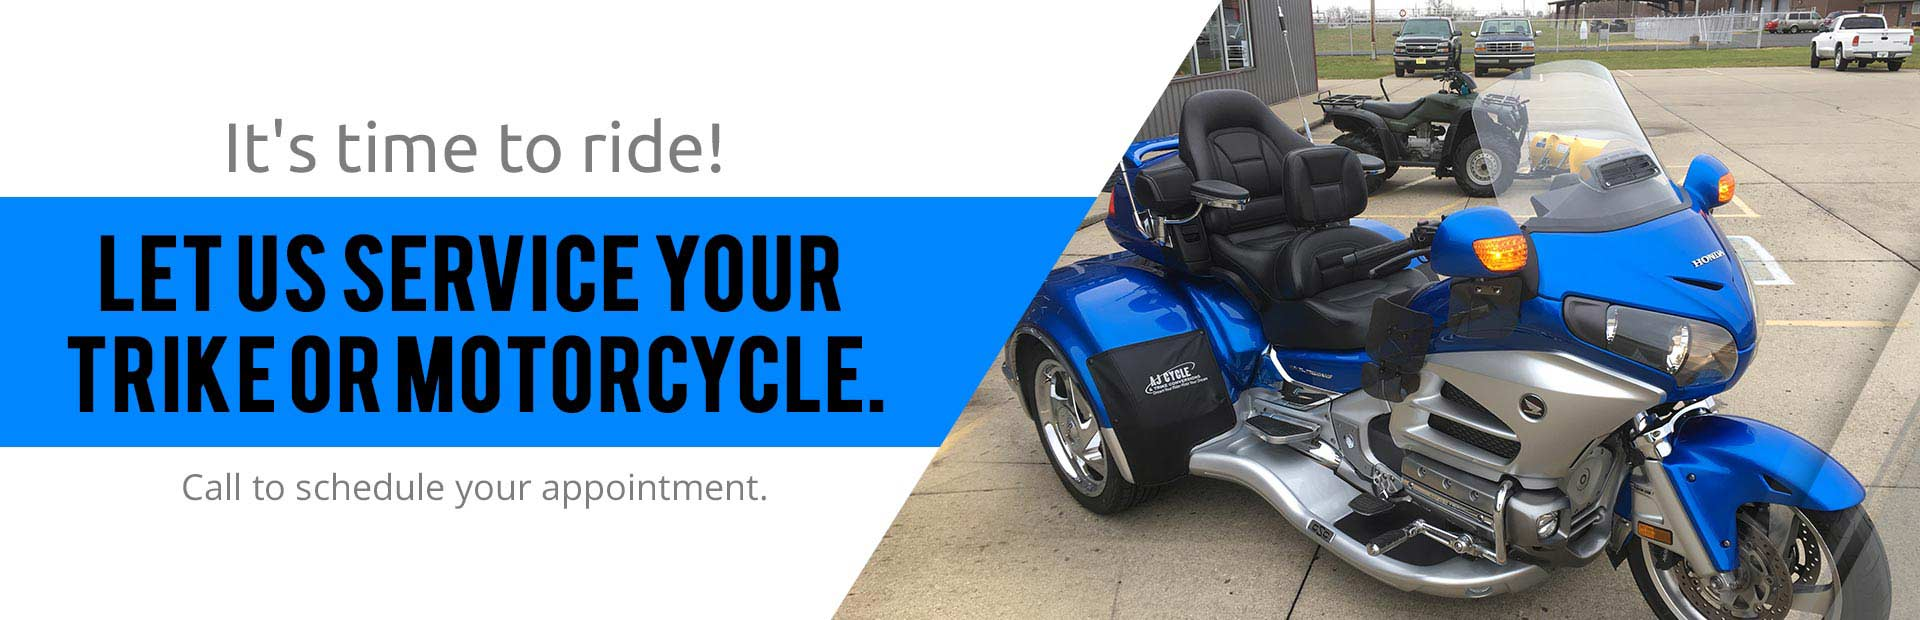 Let us service your trike or motorcycle. Call to schedule your appointment.